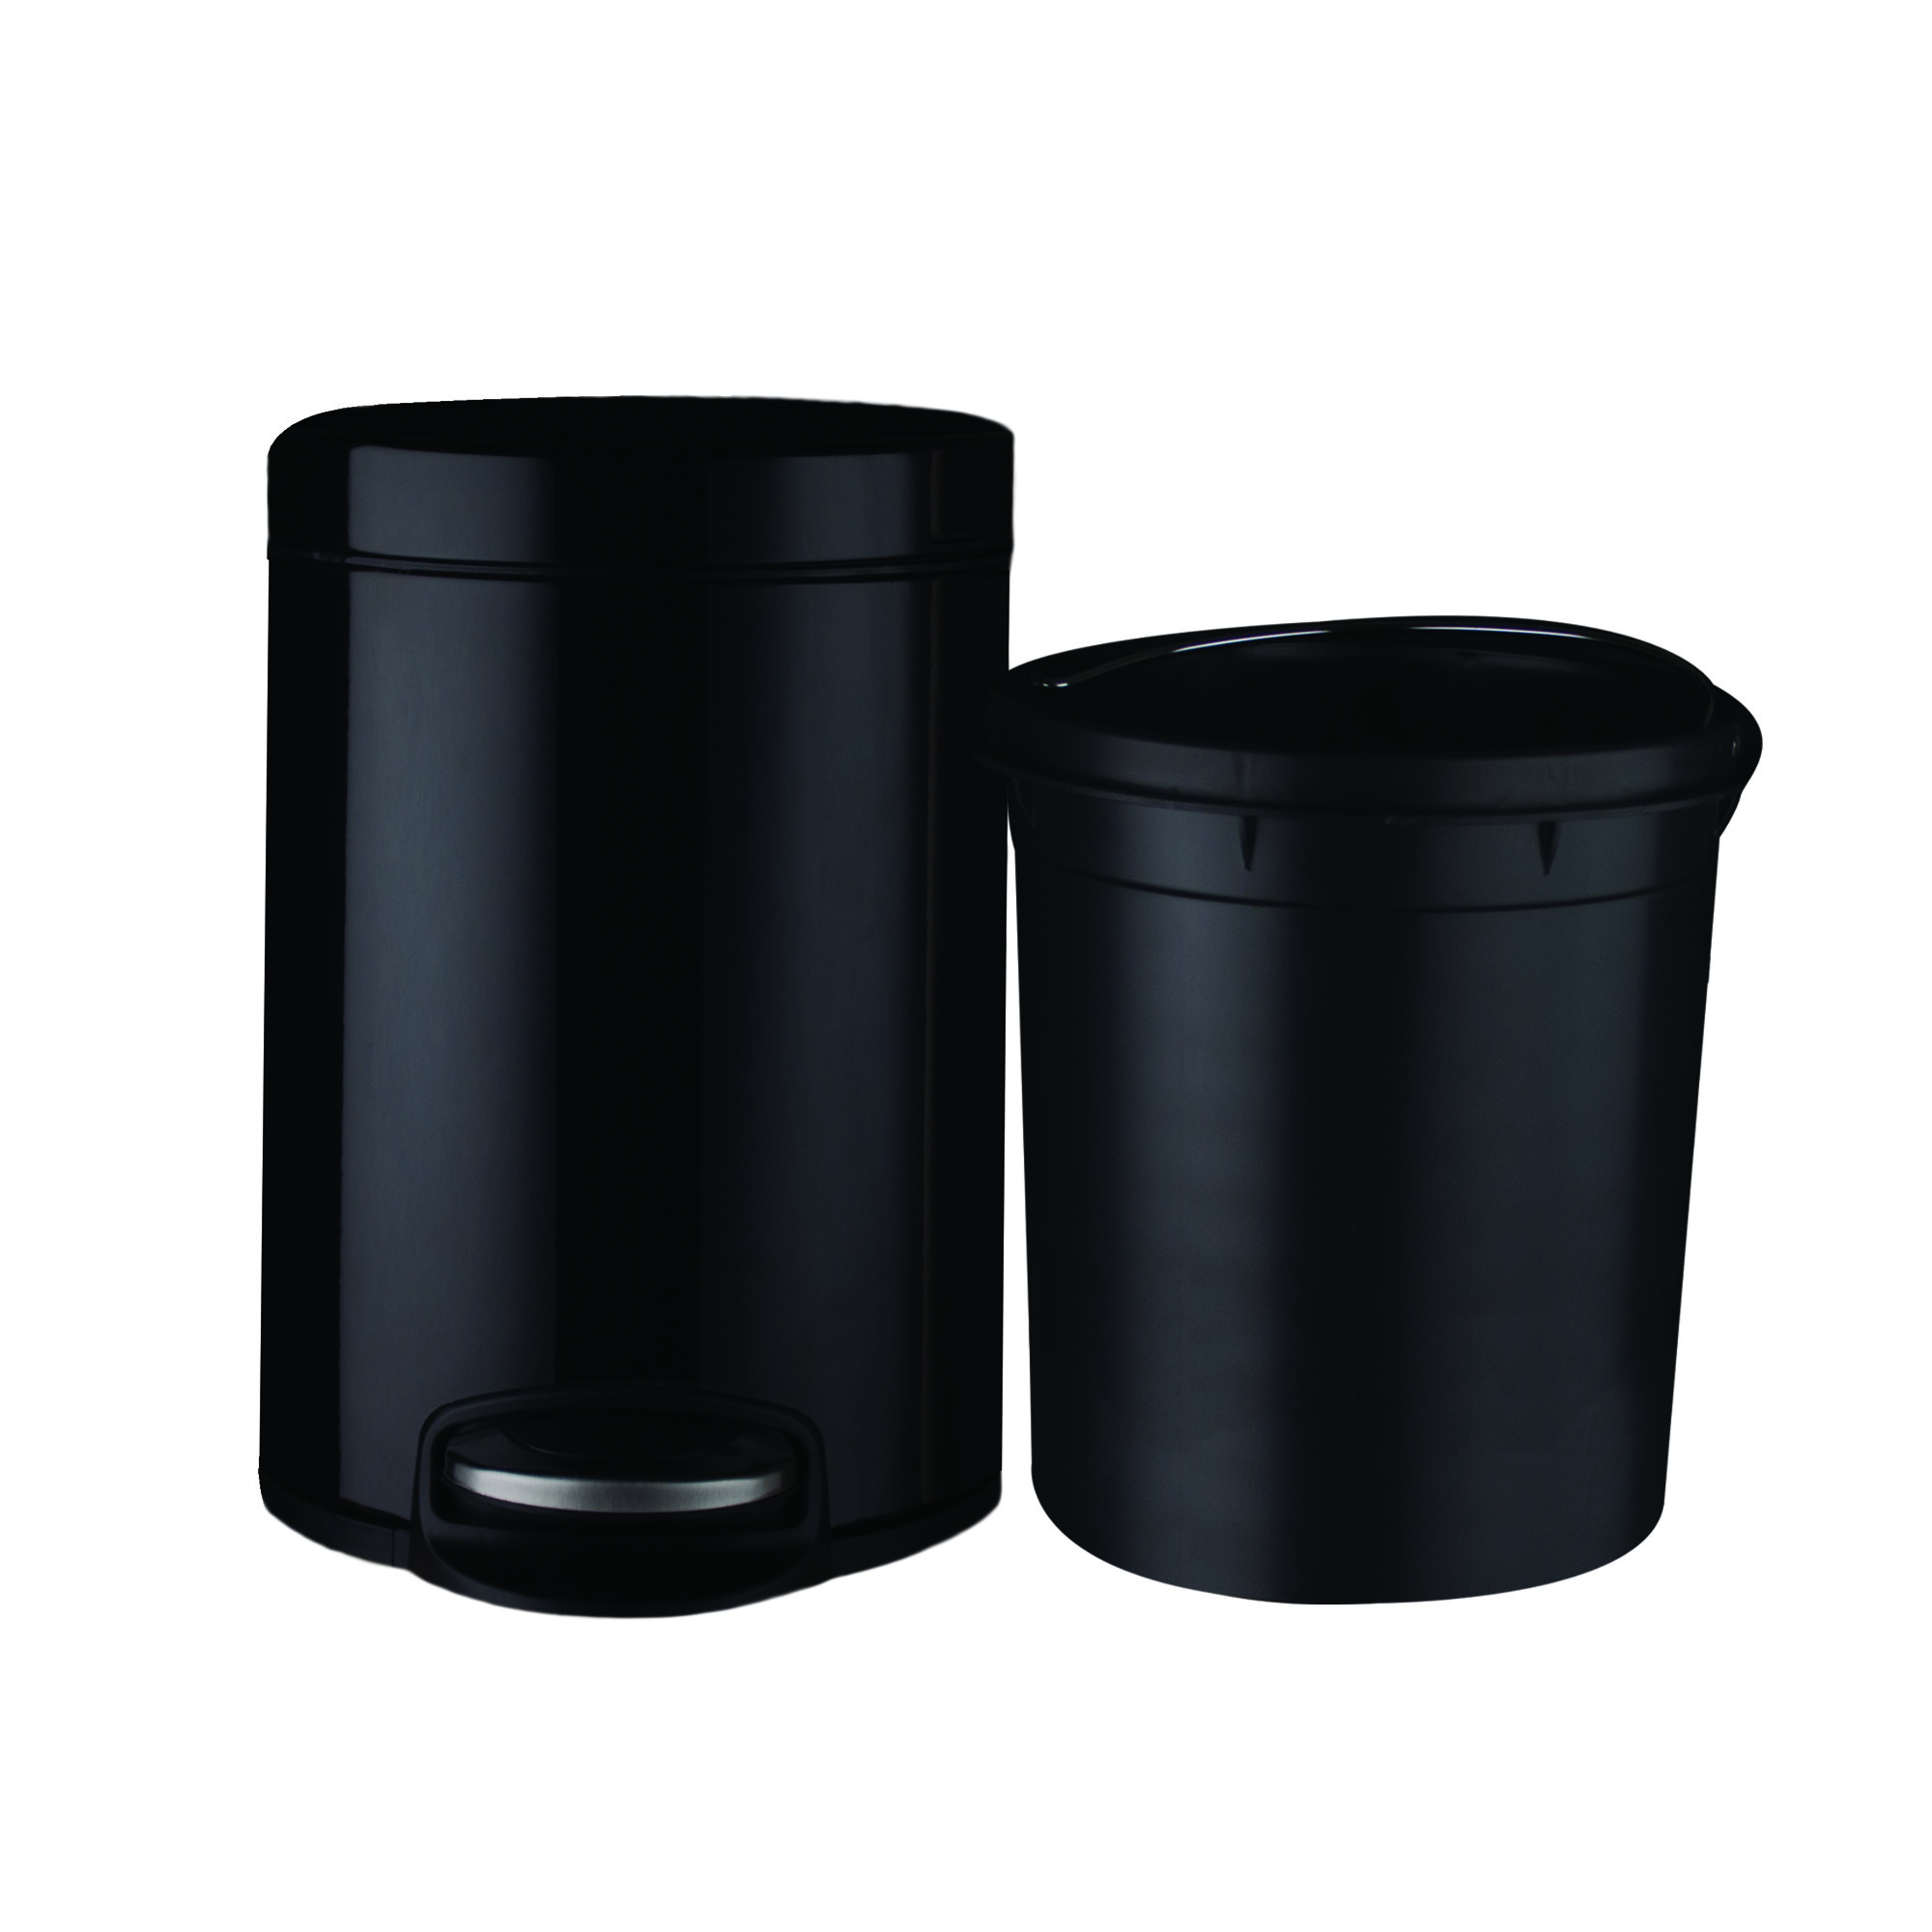 Rubine 5l Pedal Bin Black Regular Price S 38 00